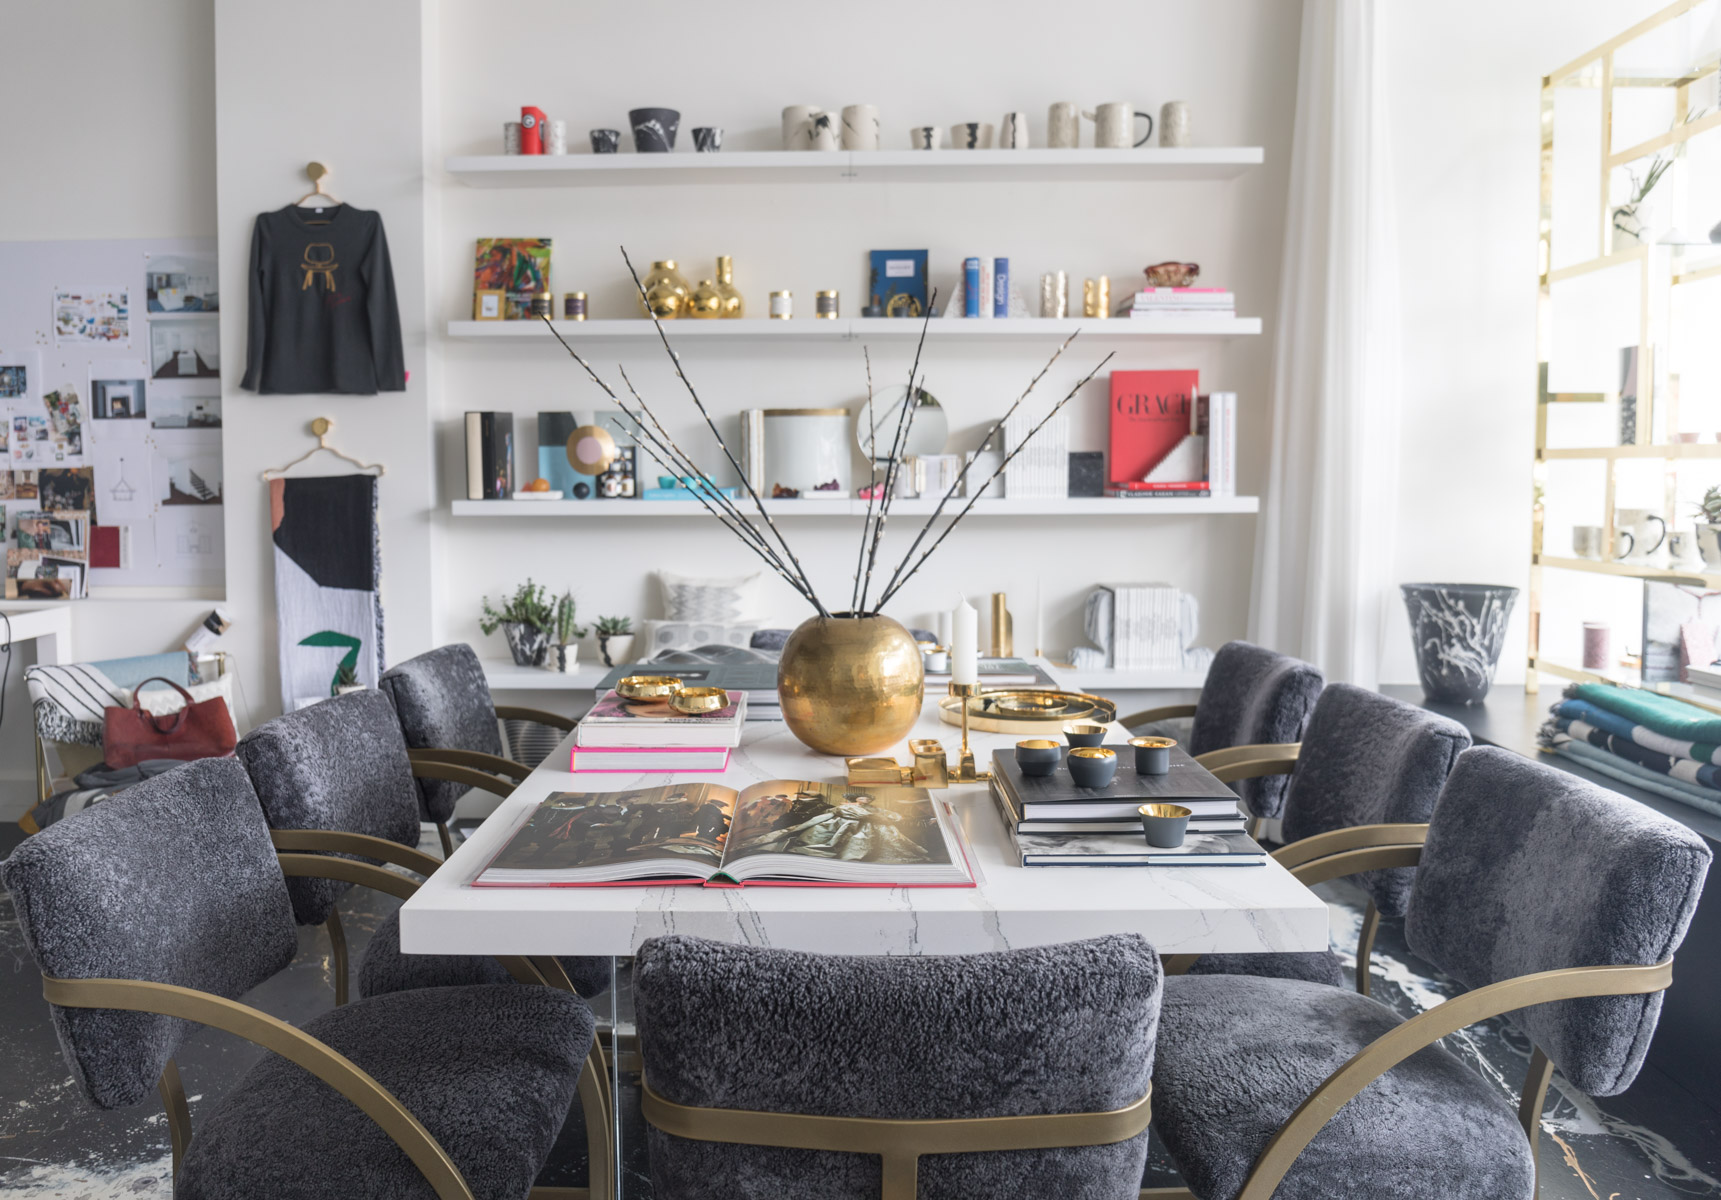 Restored vintage chairs in HSH Interiors San Francisco boutique